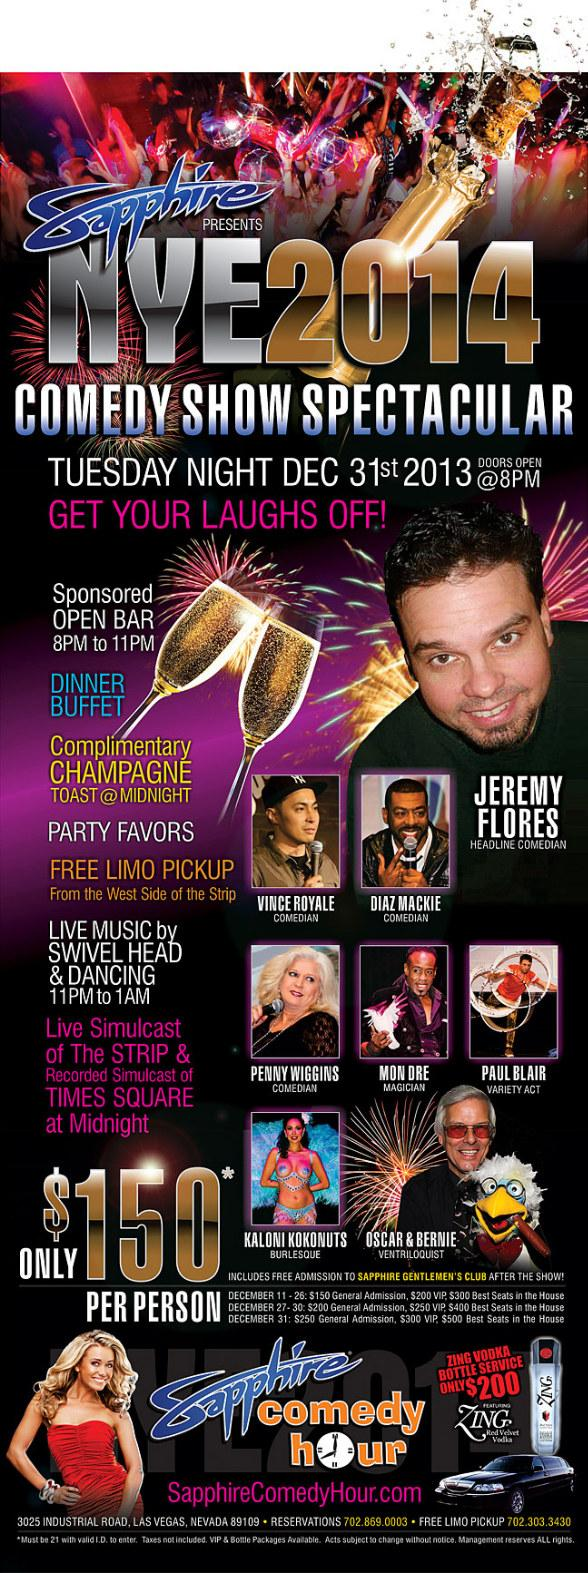 Sapphire Presents NYE 2014 Comedy Show Spectacular Tuesday, Dec. 31